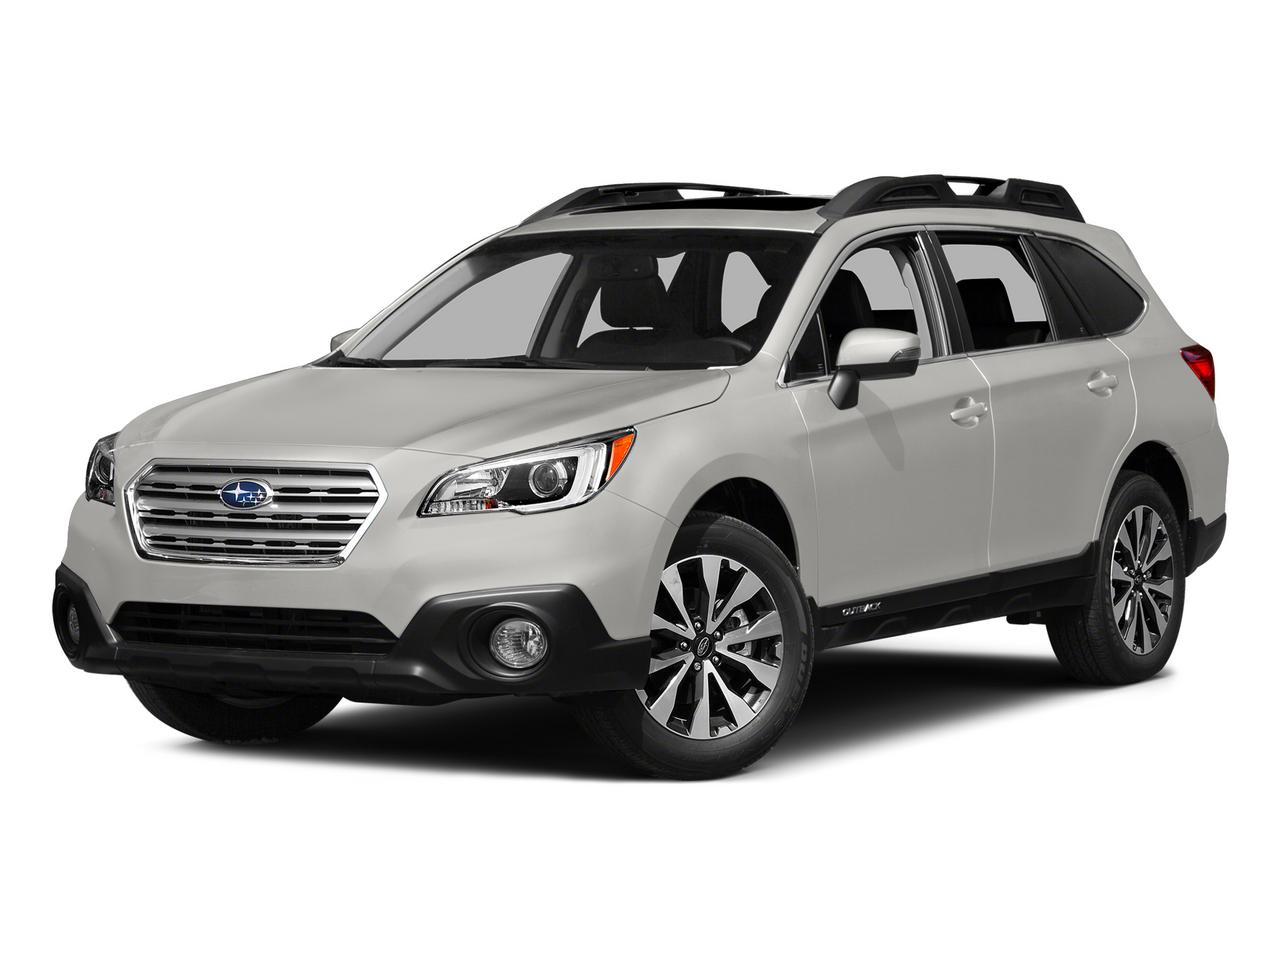 2015 Subaru Outback Vehicle Photo in Cary, NC 27511